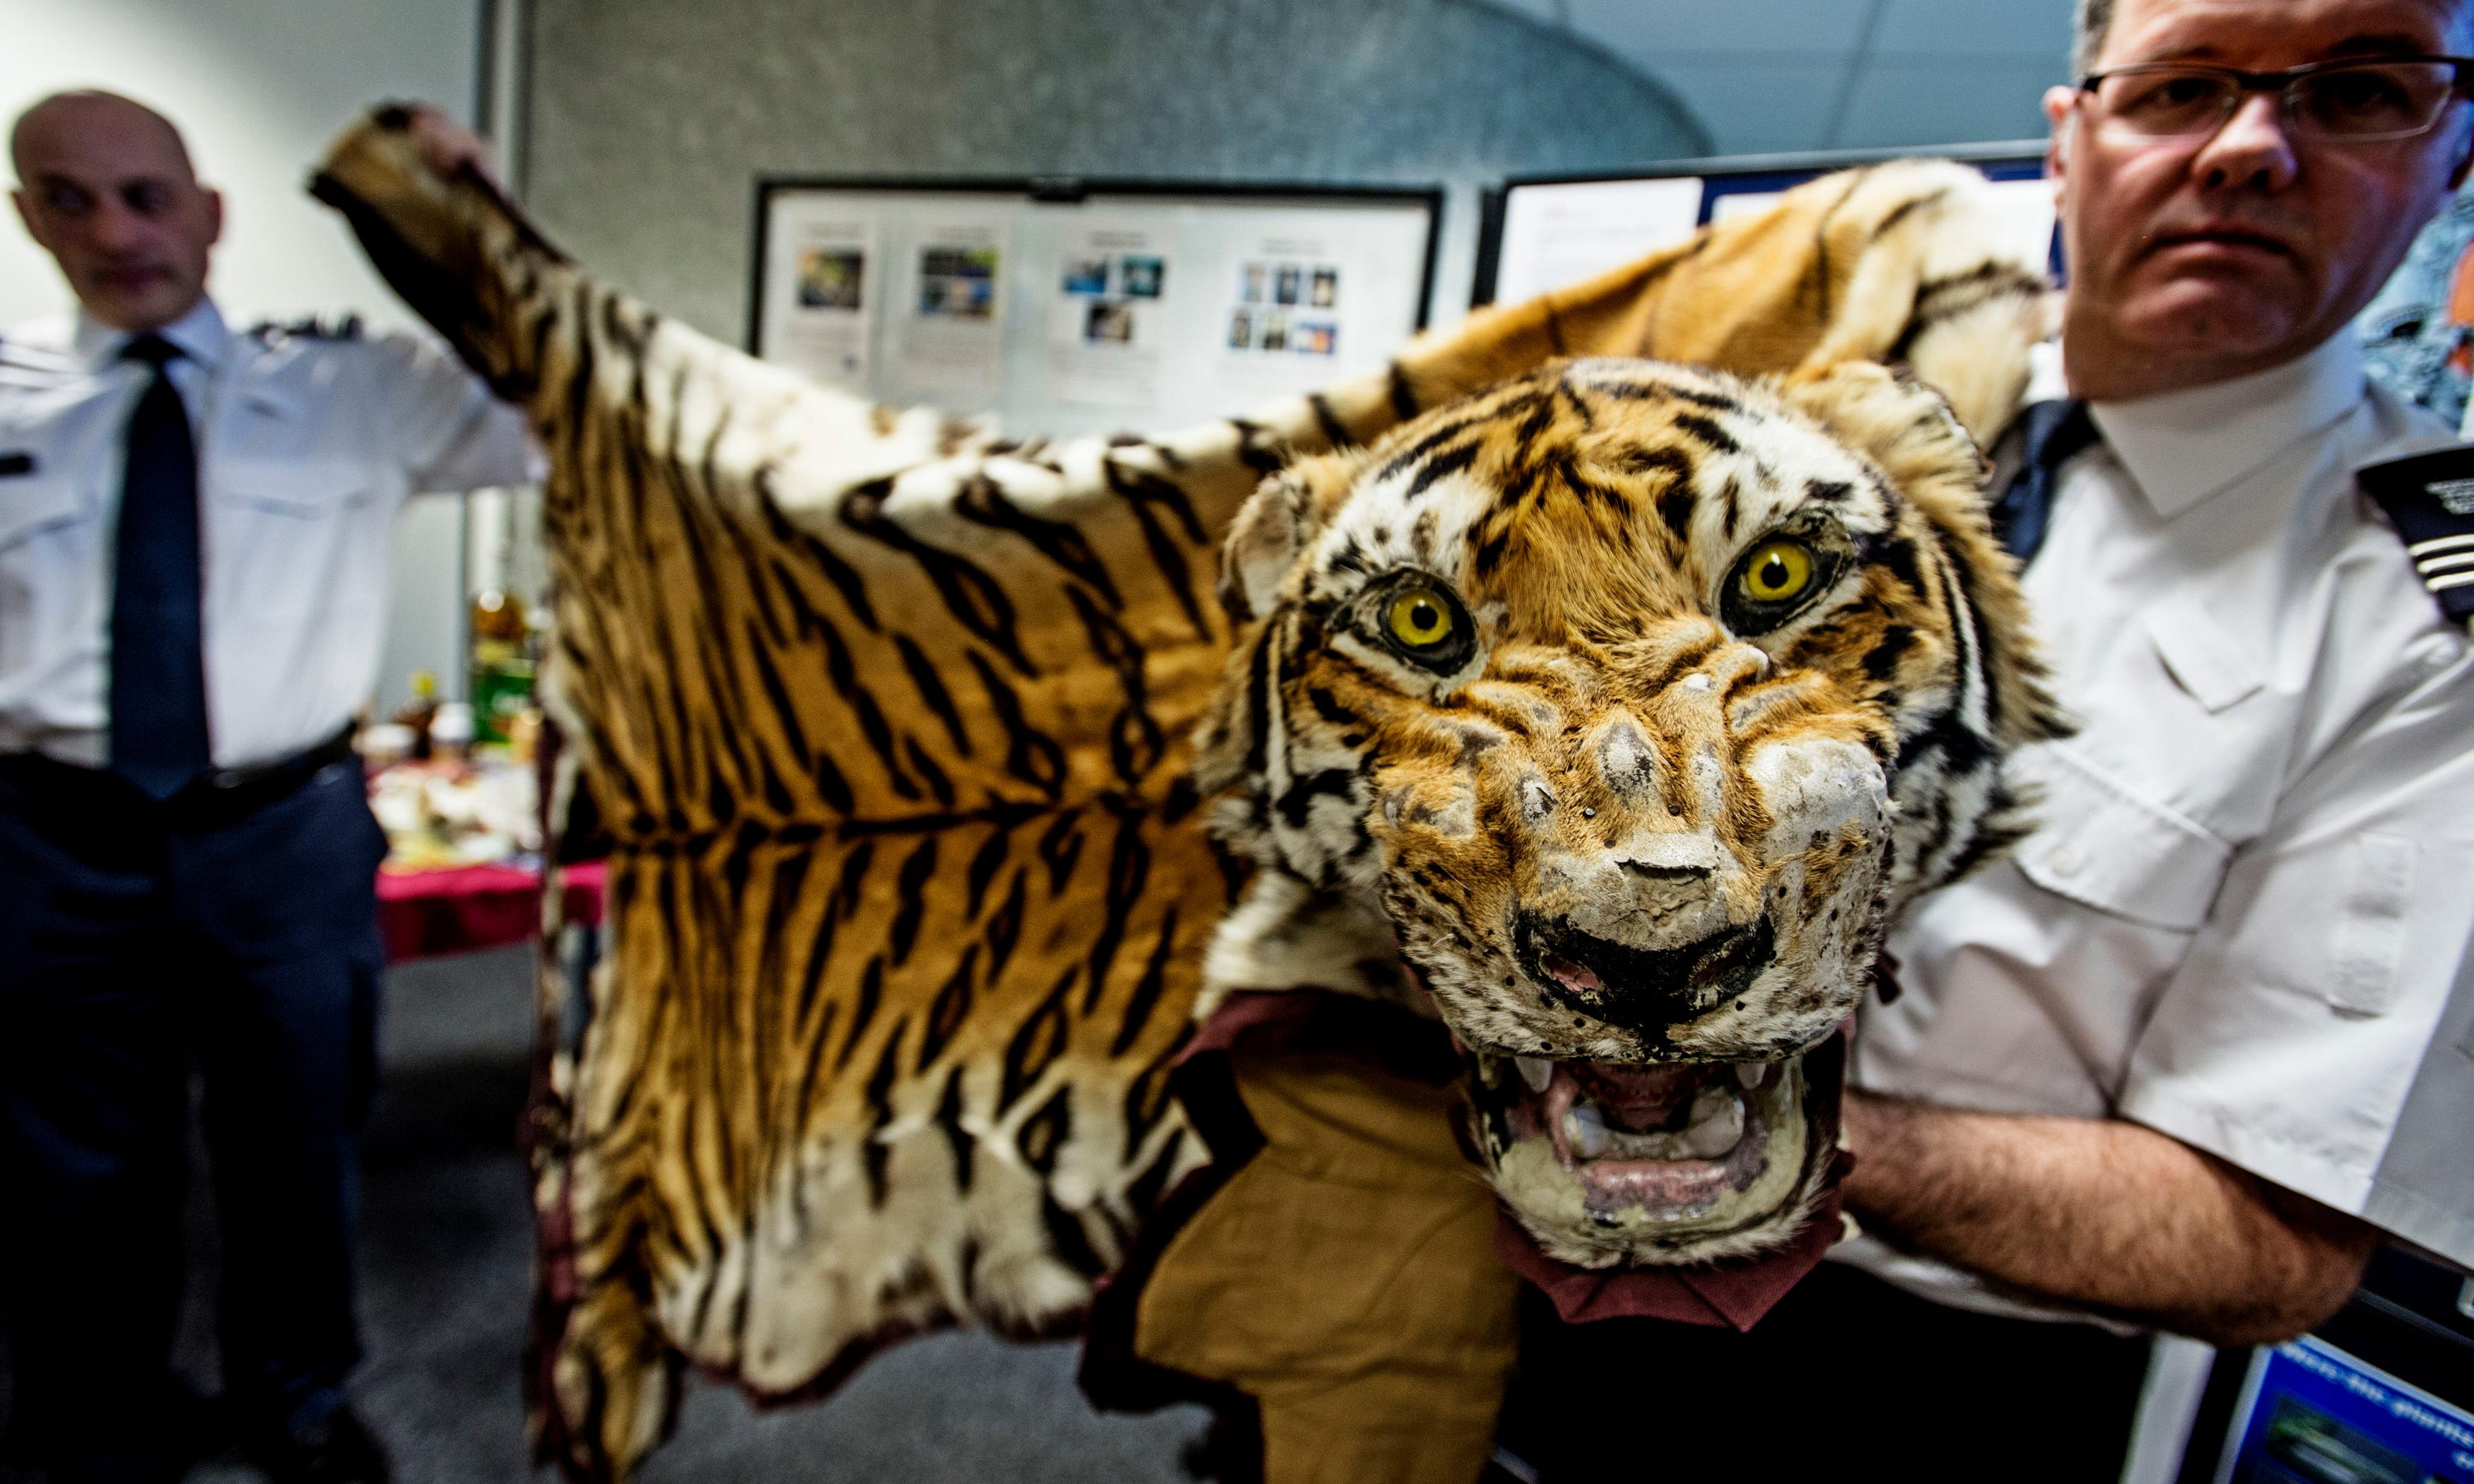 Two tigers seized from traffickers every week, report finds